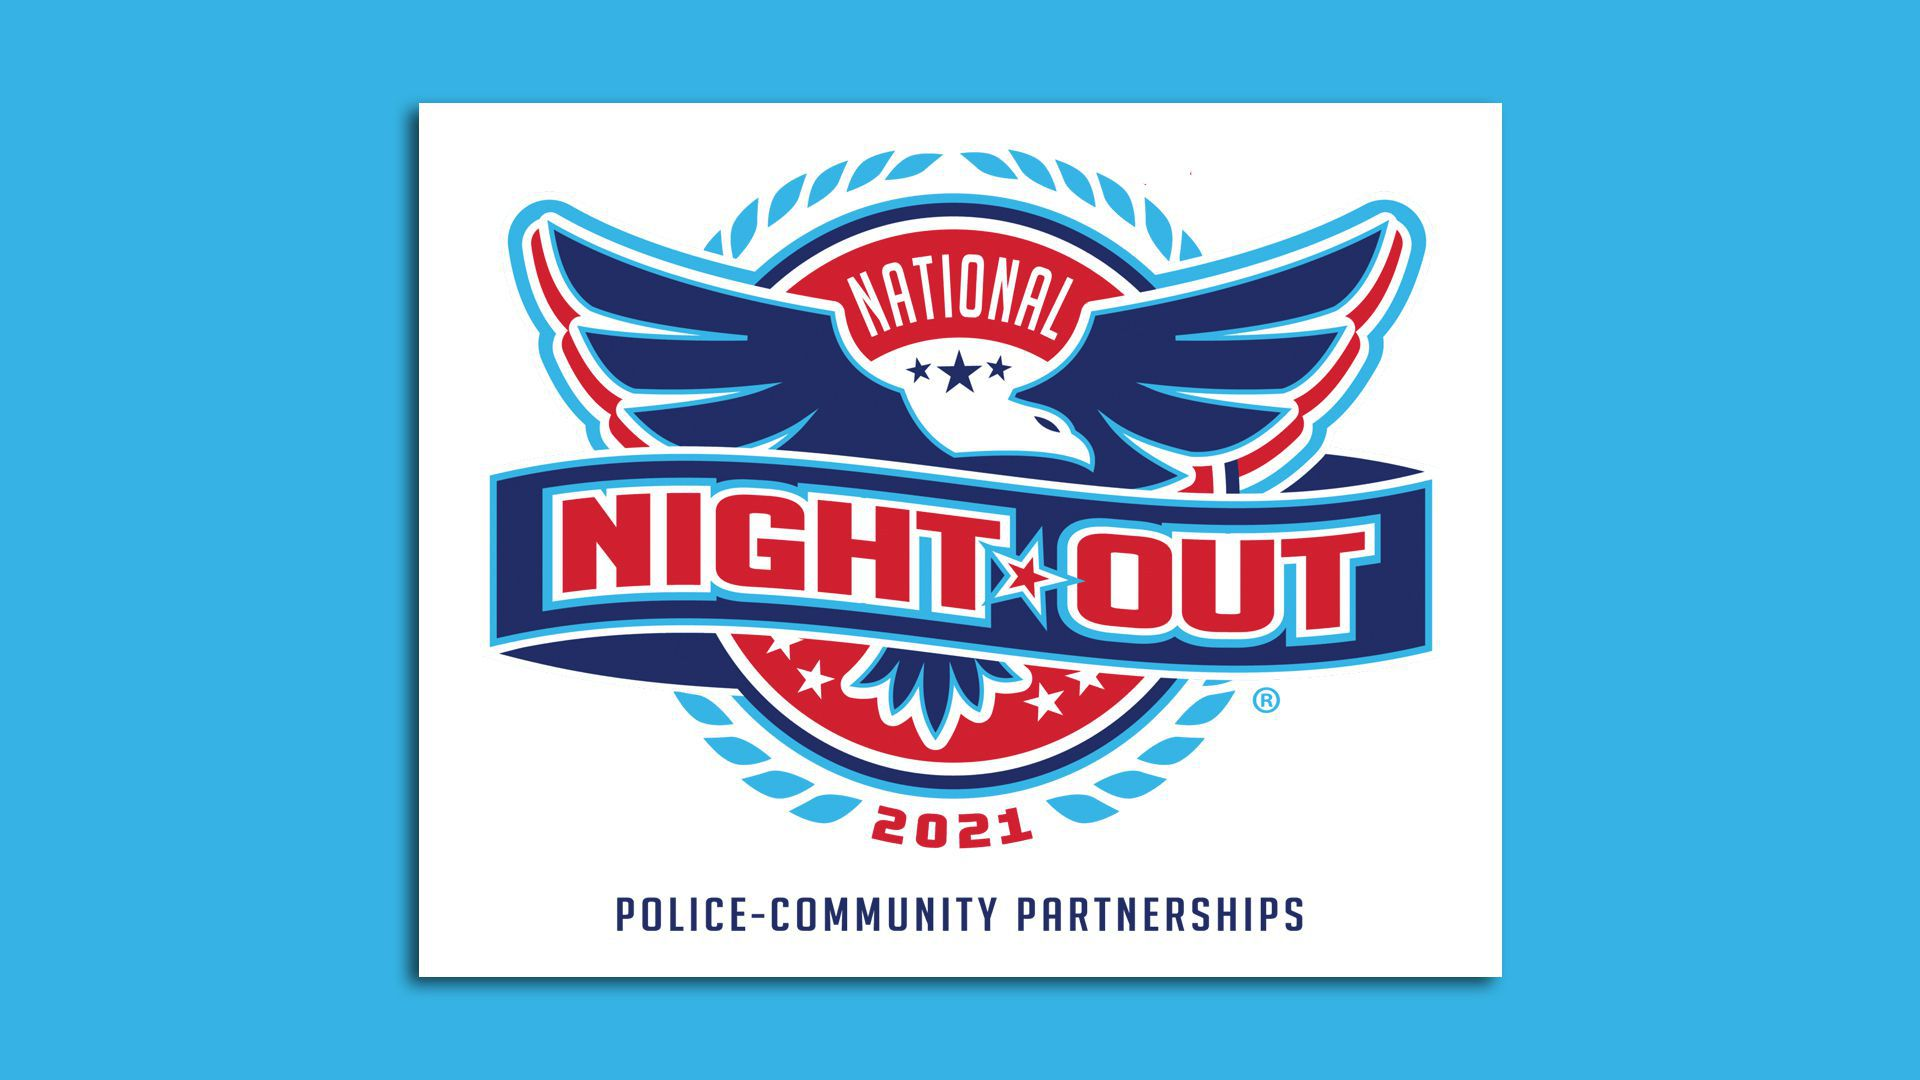 """A blue-and-red logo for National Night Out 2021, with an eagle and the phrase """"police-community partnerships."""""""